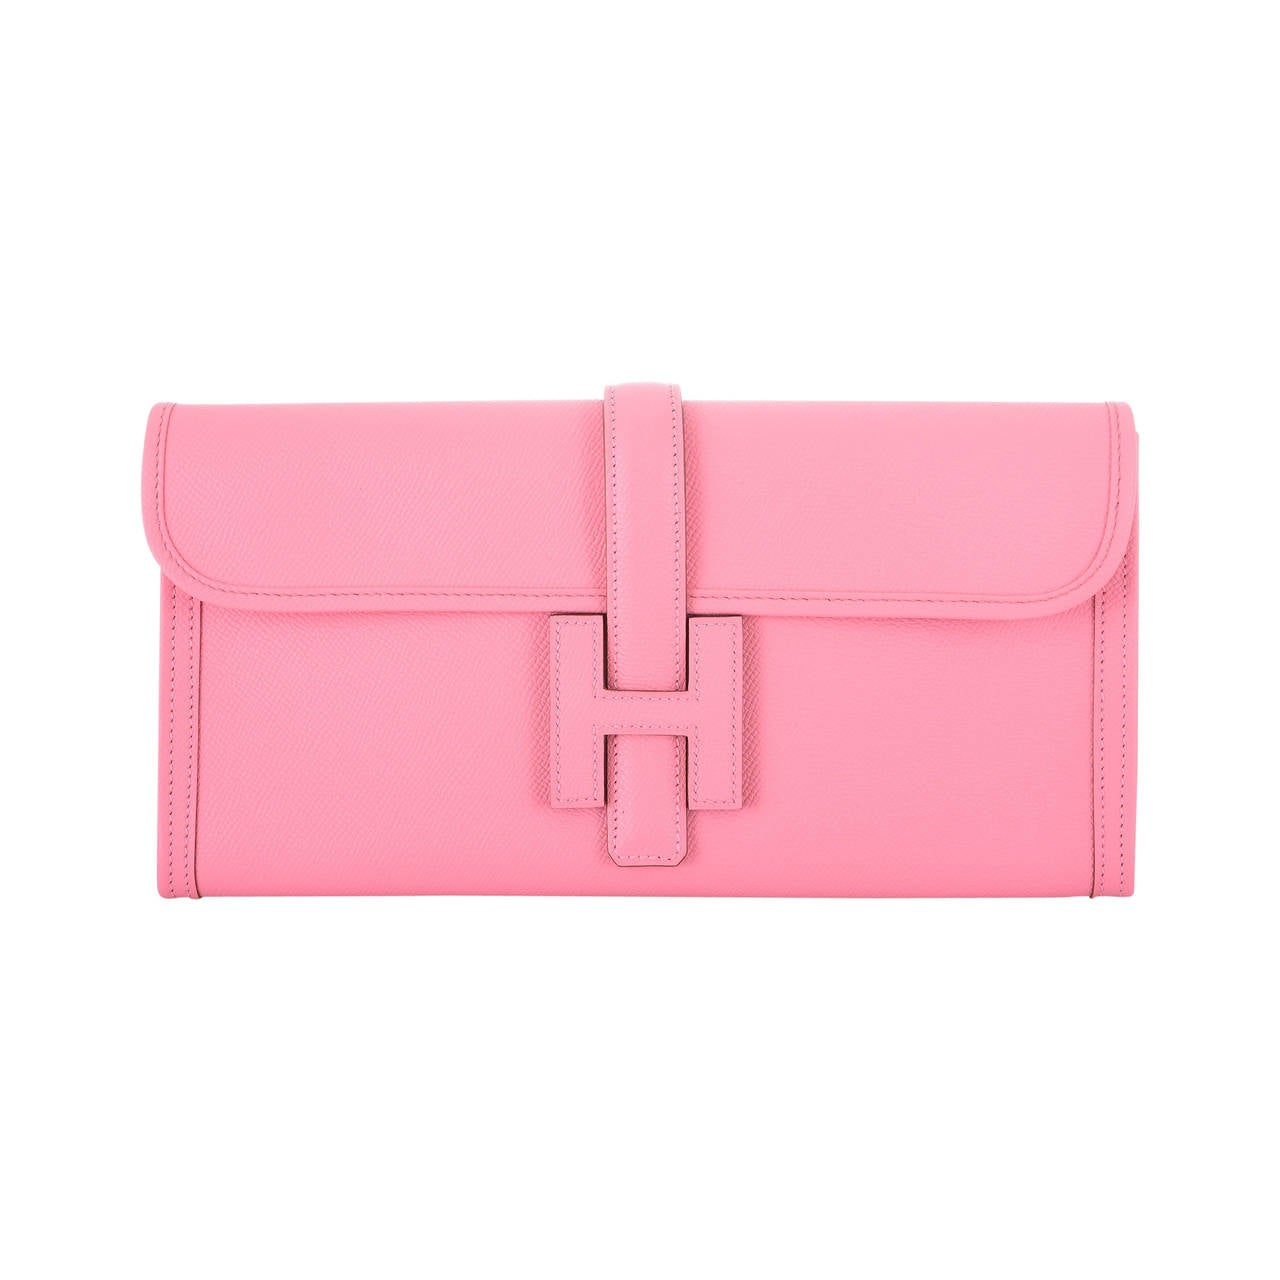 birkin bag knockoff - HERMES JIGE ELAN 29CM ROSE CONFETTI STUNNING CLUTCH JaneFinds For ...